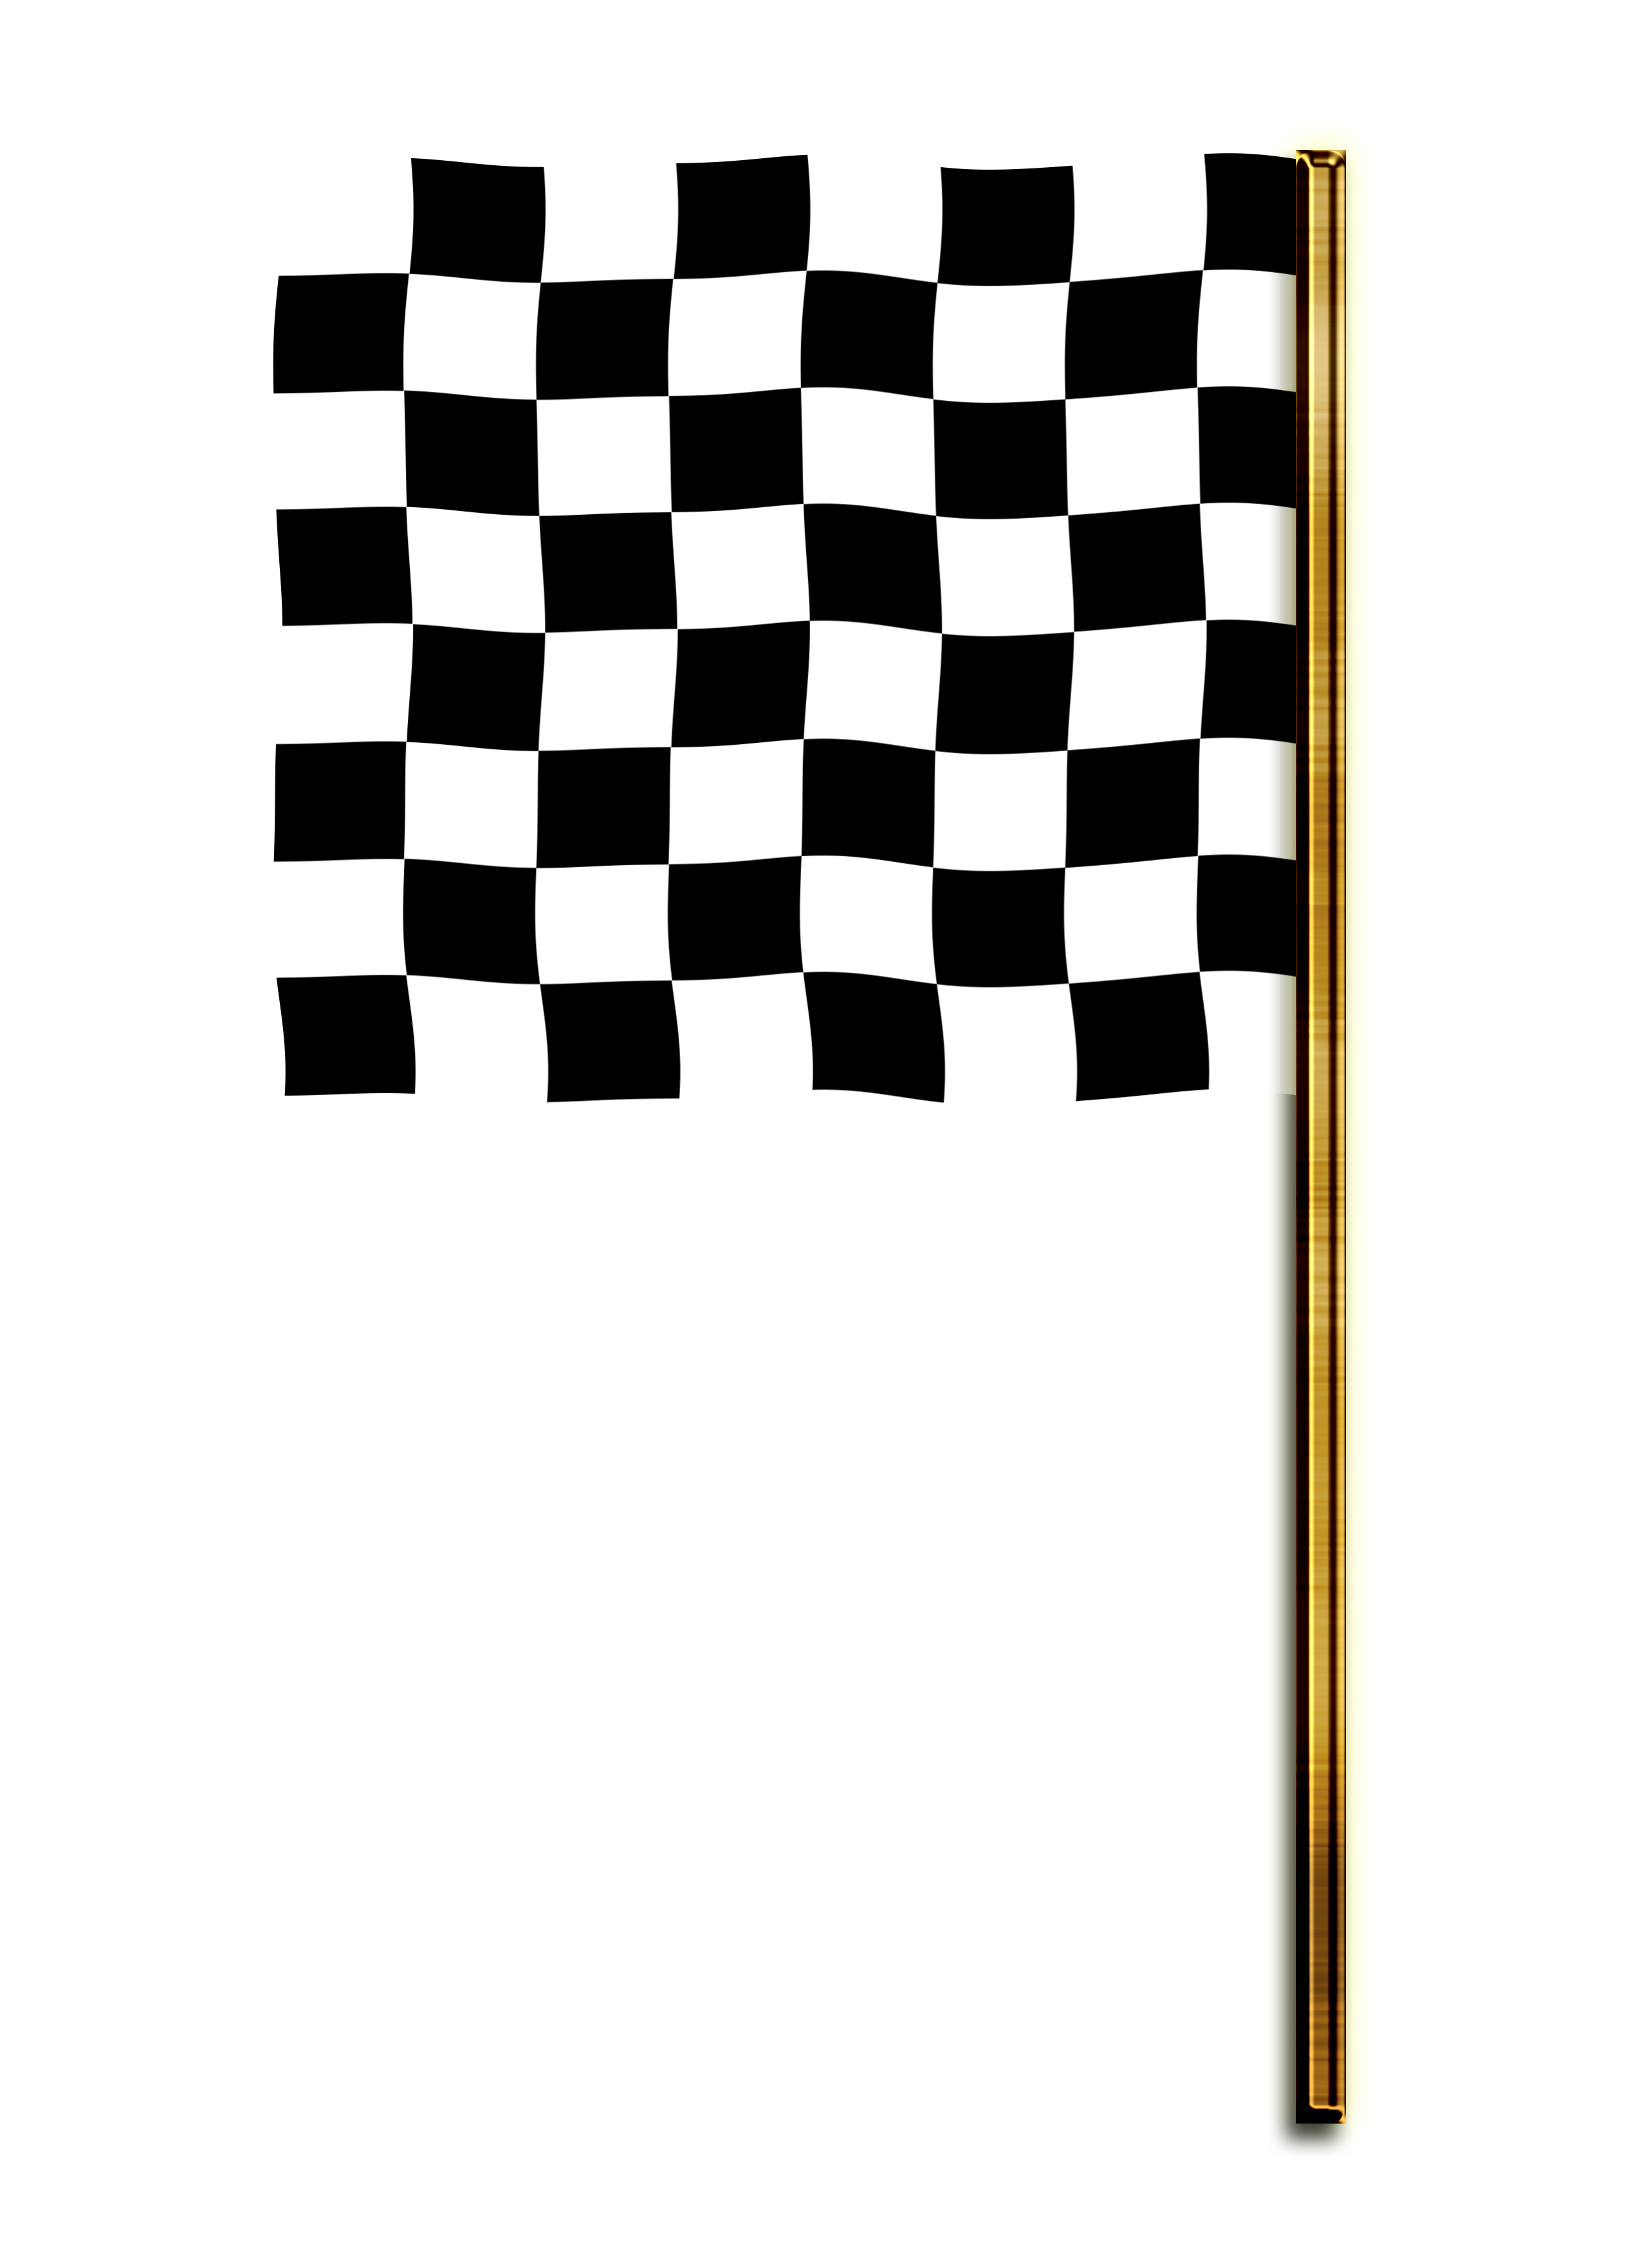 Race clipart to finish. Start flag vector png